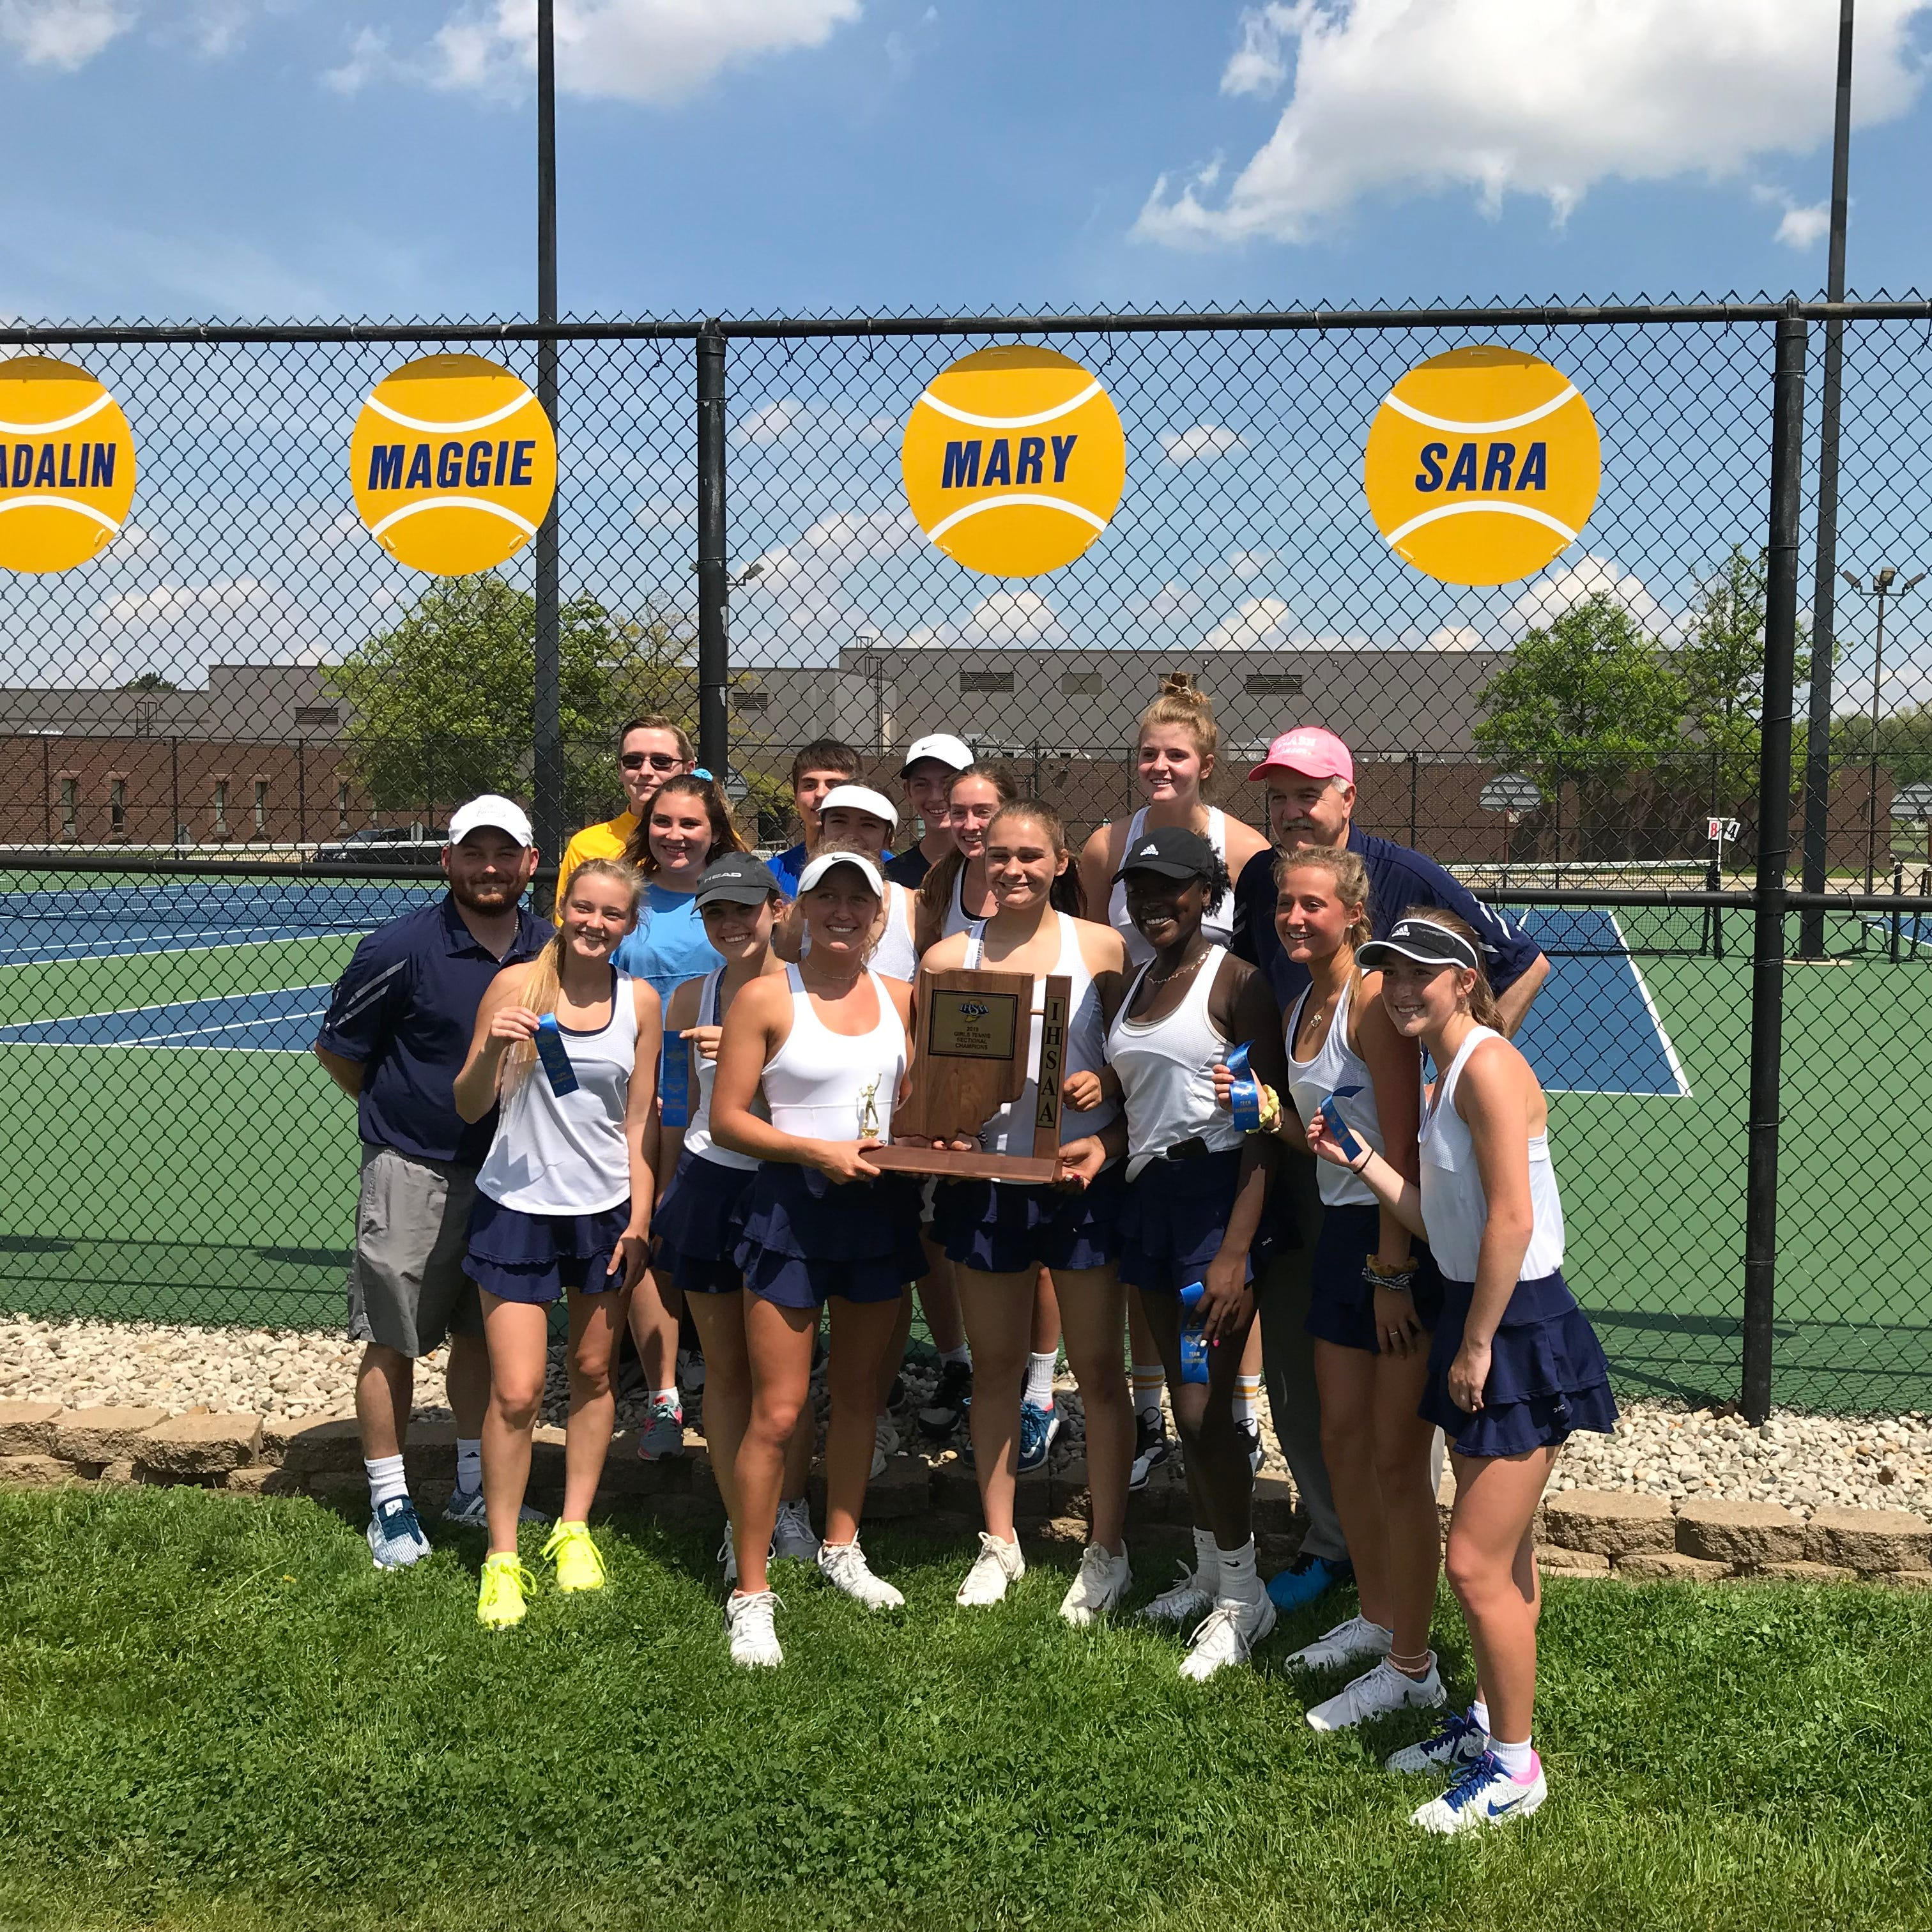 'We had the firepower': Delta wins girls tennis sectional, coach Cleland hits milestone